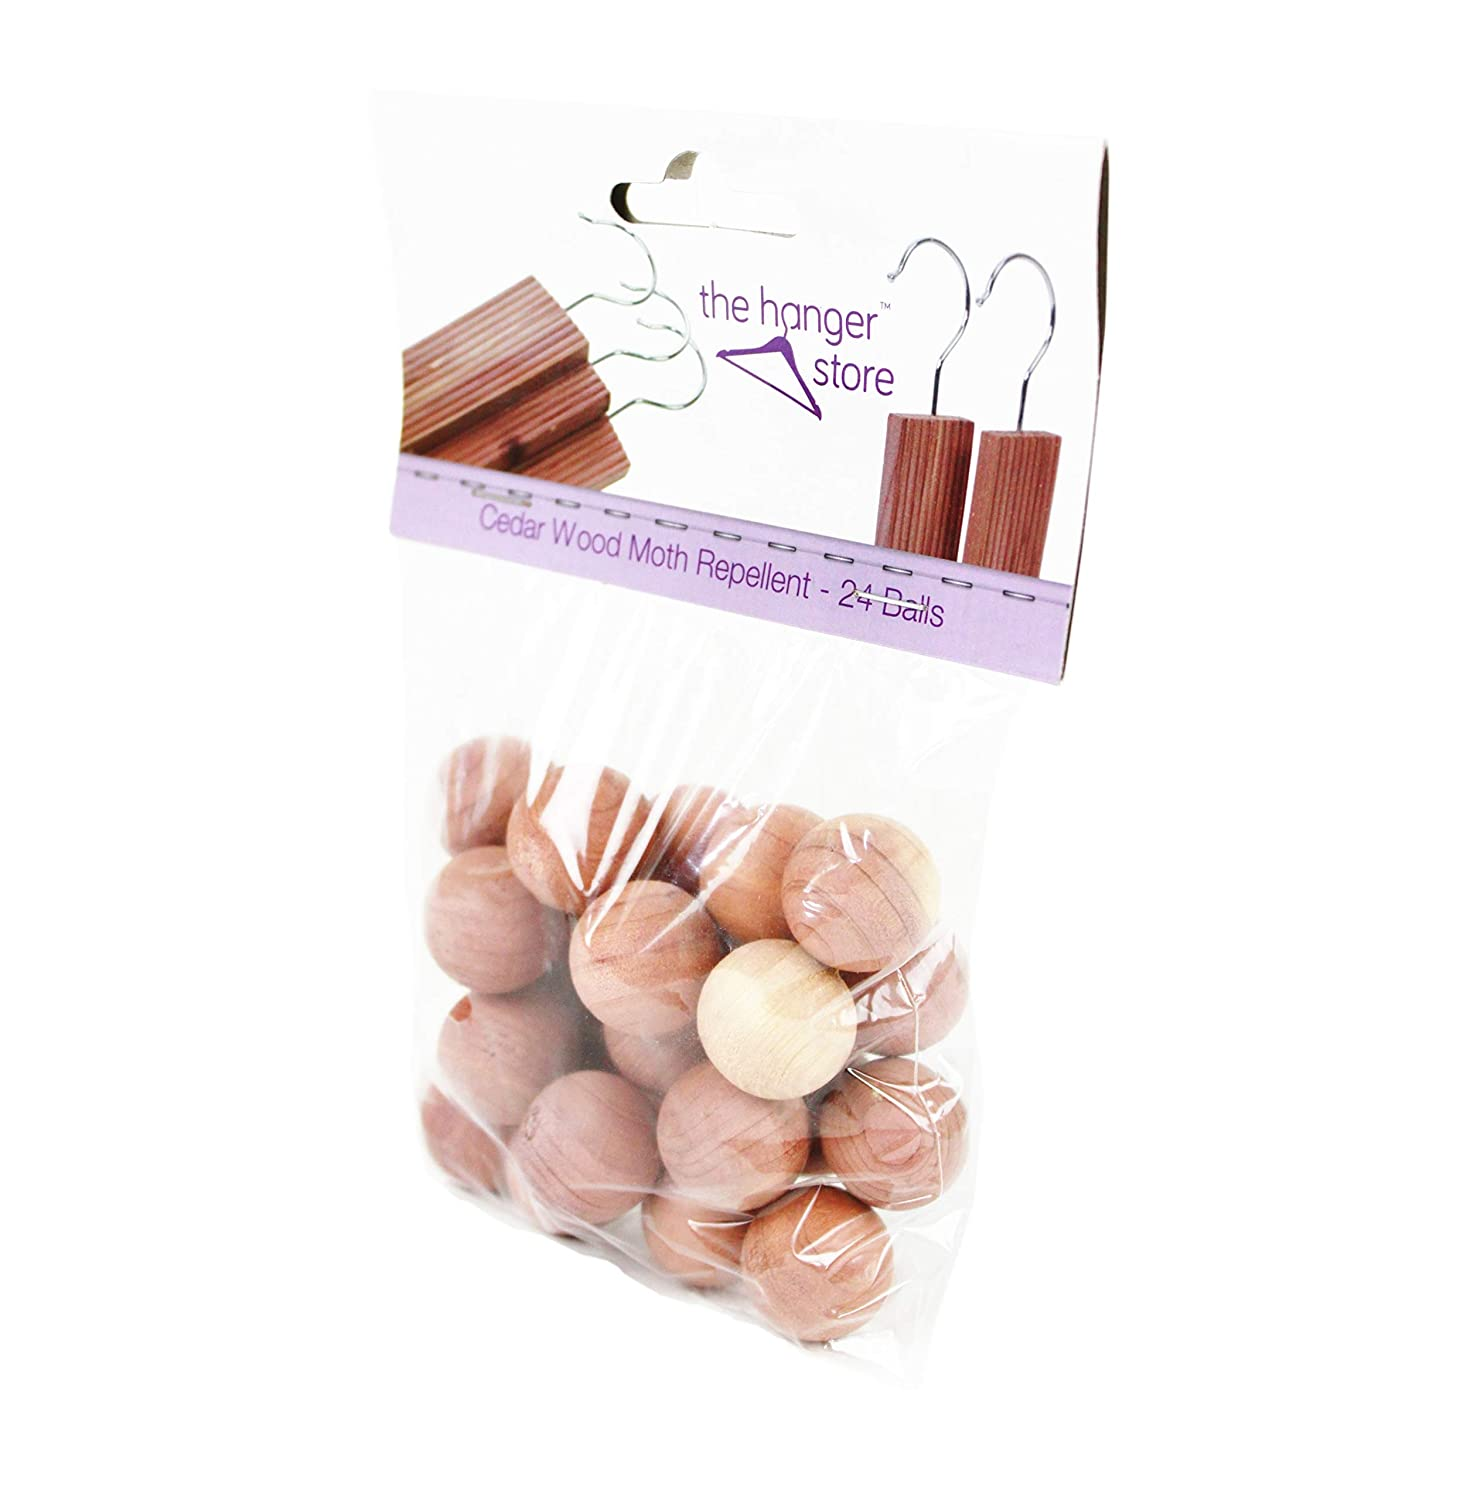 Drawer Fresheners The Hanger Store 24 Cedar Wood Anti Moth Repellent Balls with Odour Protection Wardrobe